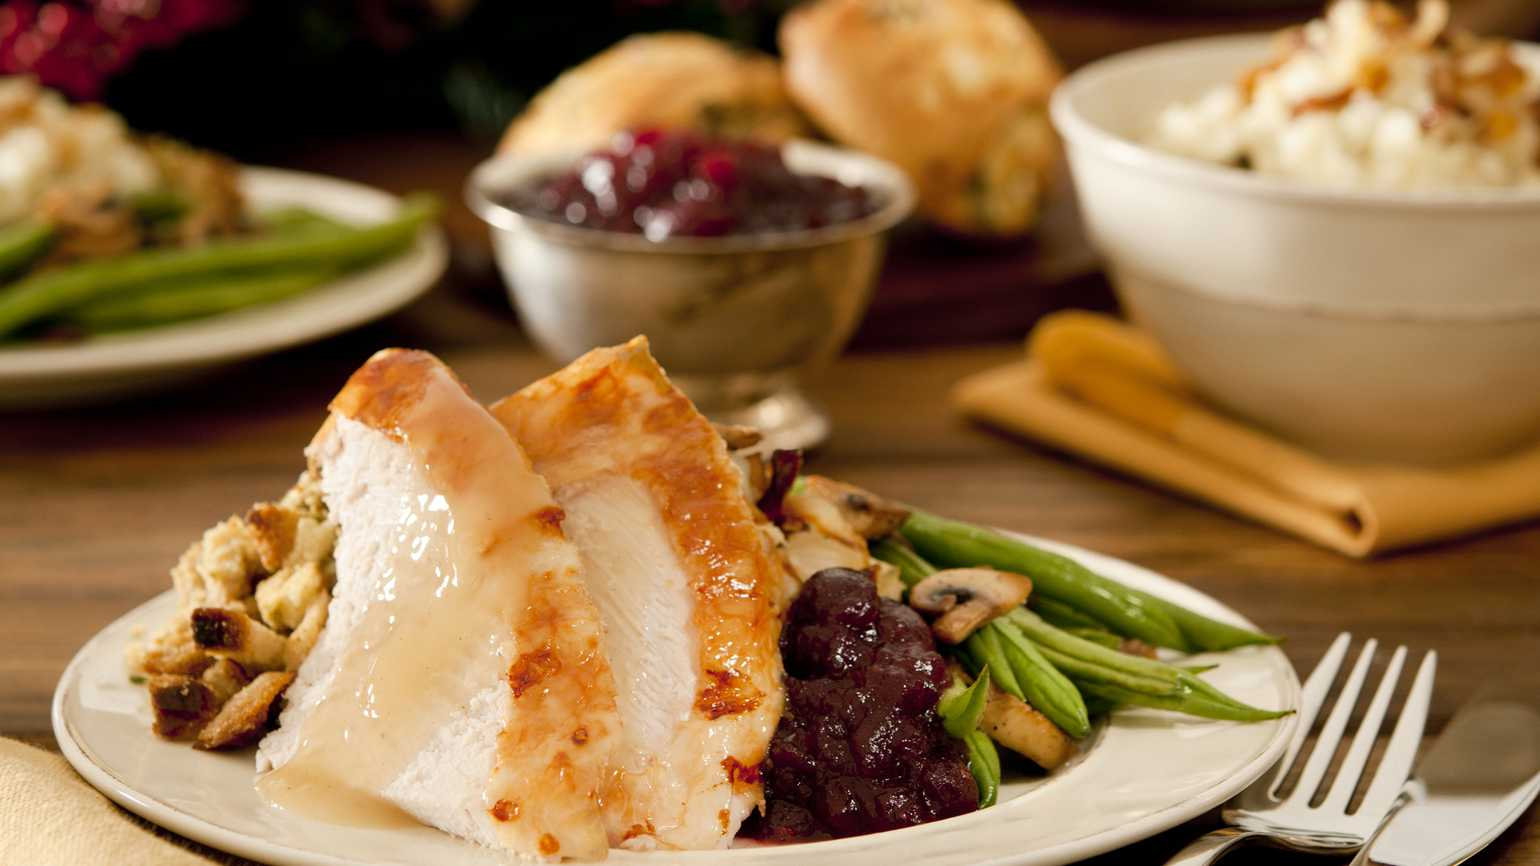 A dinner plate with roasted turkey, string beans, cranberry sauce and stuffing.